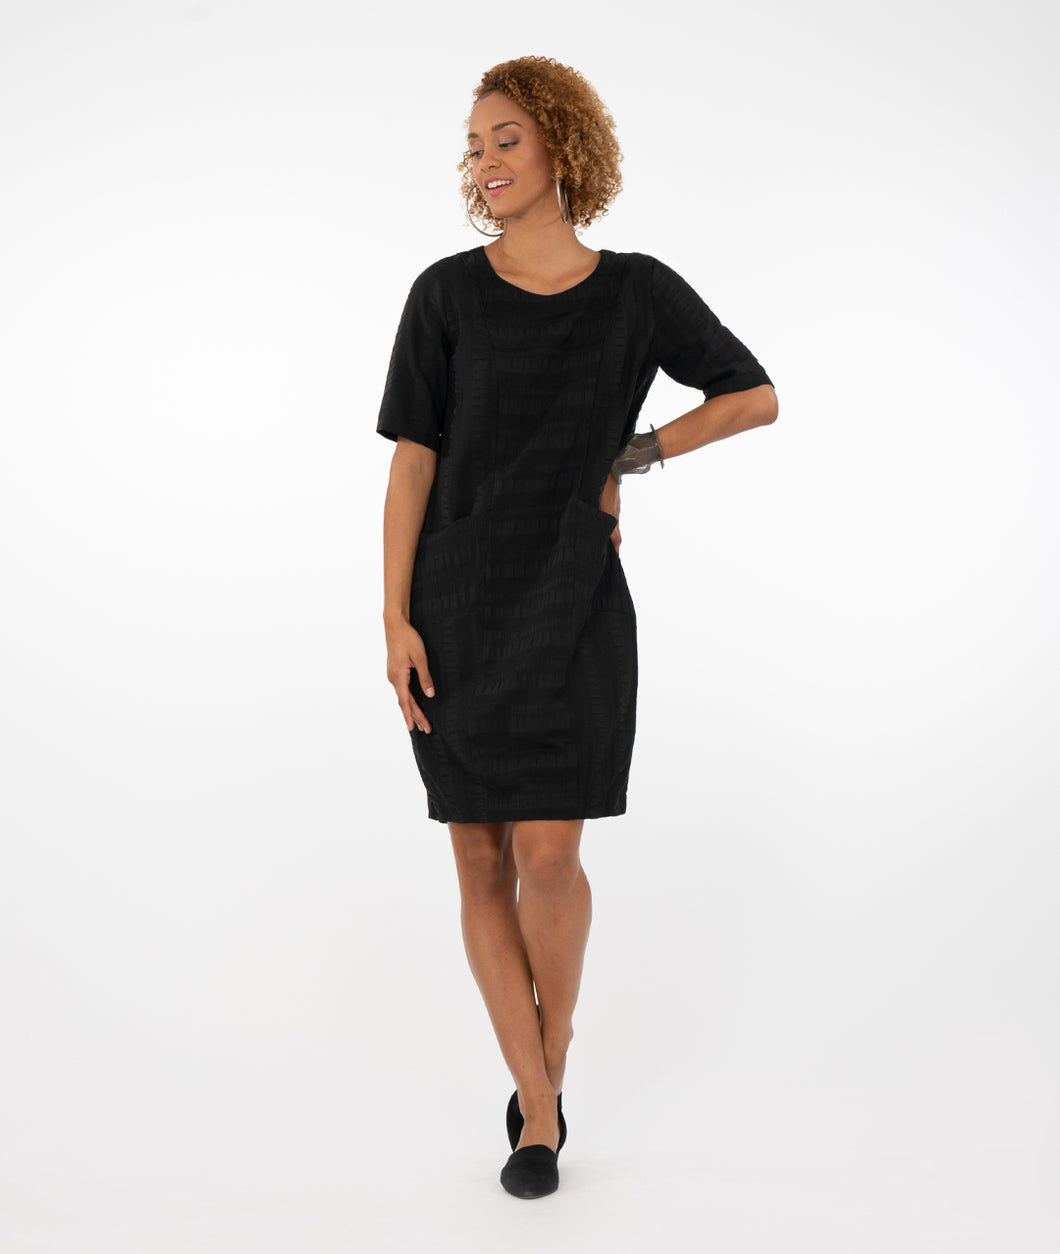 model in a black dress in front of a white background